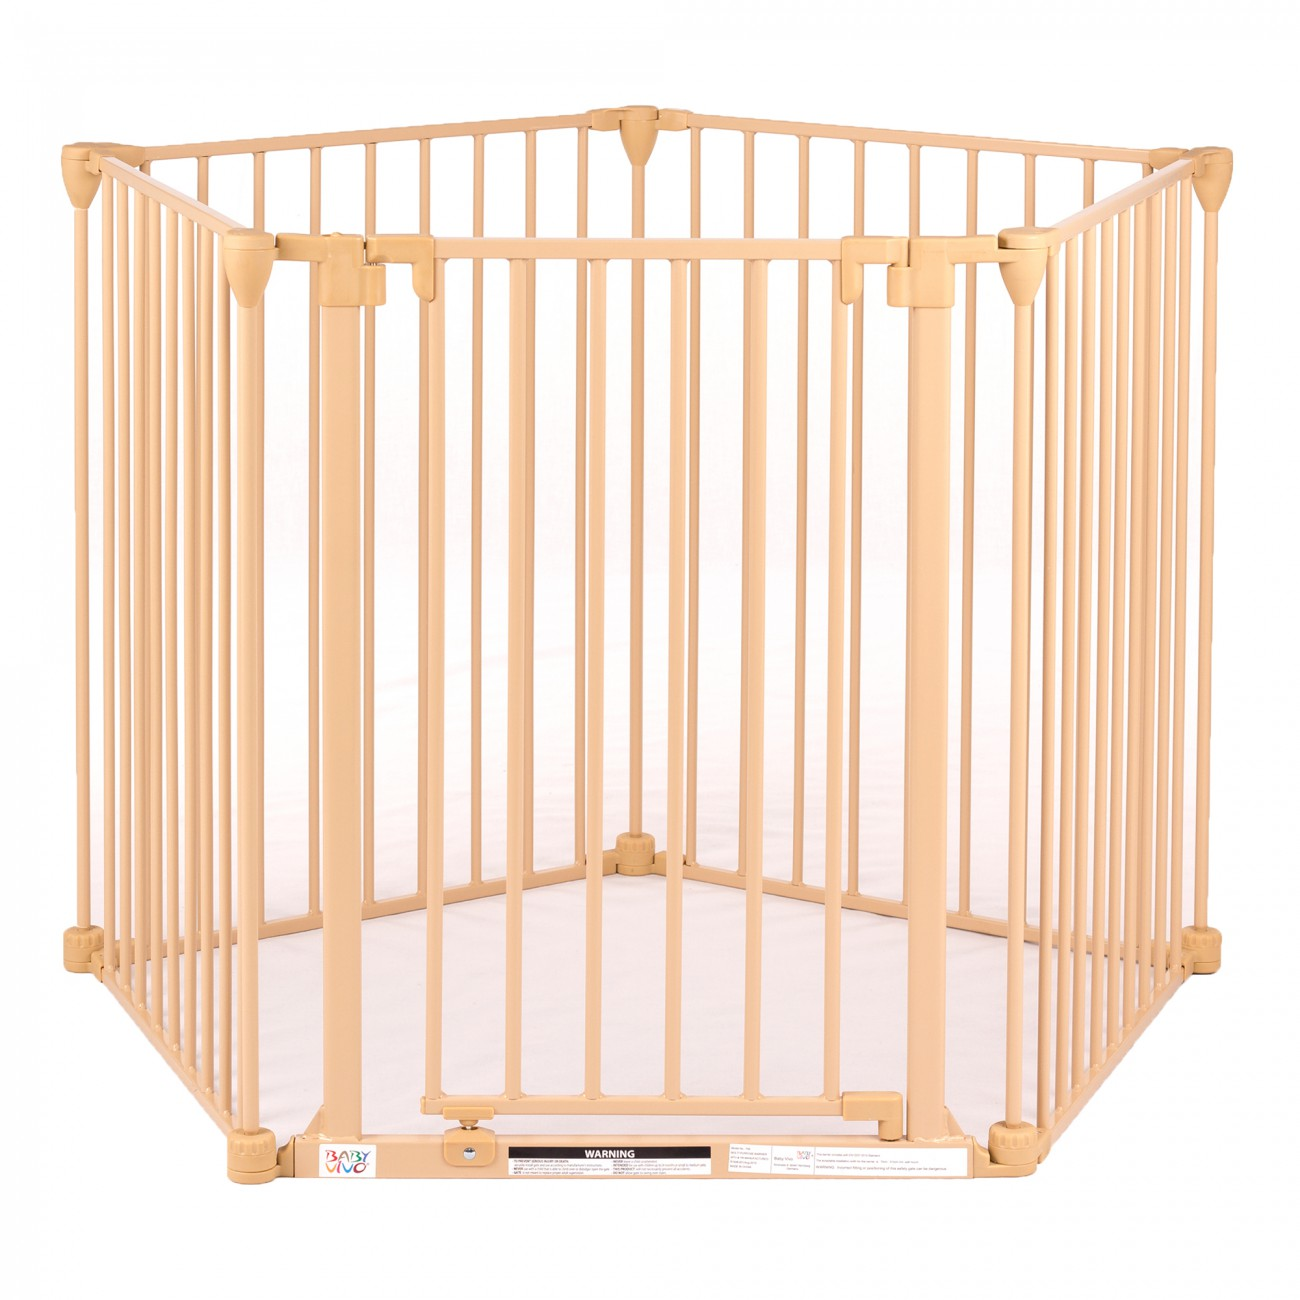 Baby vivo barri re parc en m tal grille pour chemin e 4 1 securit enfant en cr me 4 barreaux - Barriere de securite cheminee ...